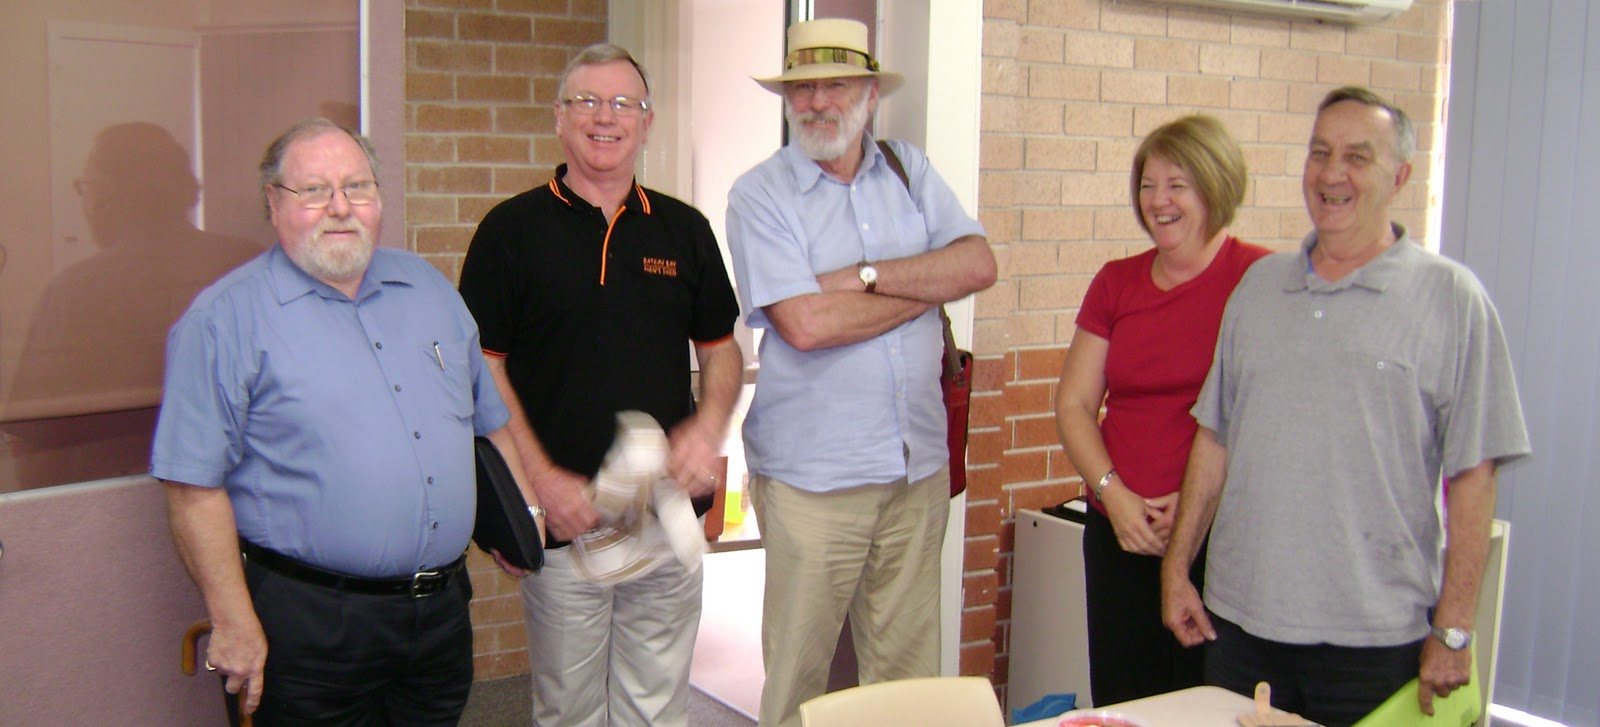 Men's Sheds - Central Coast: One committee .. four johns